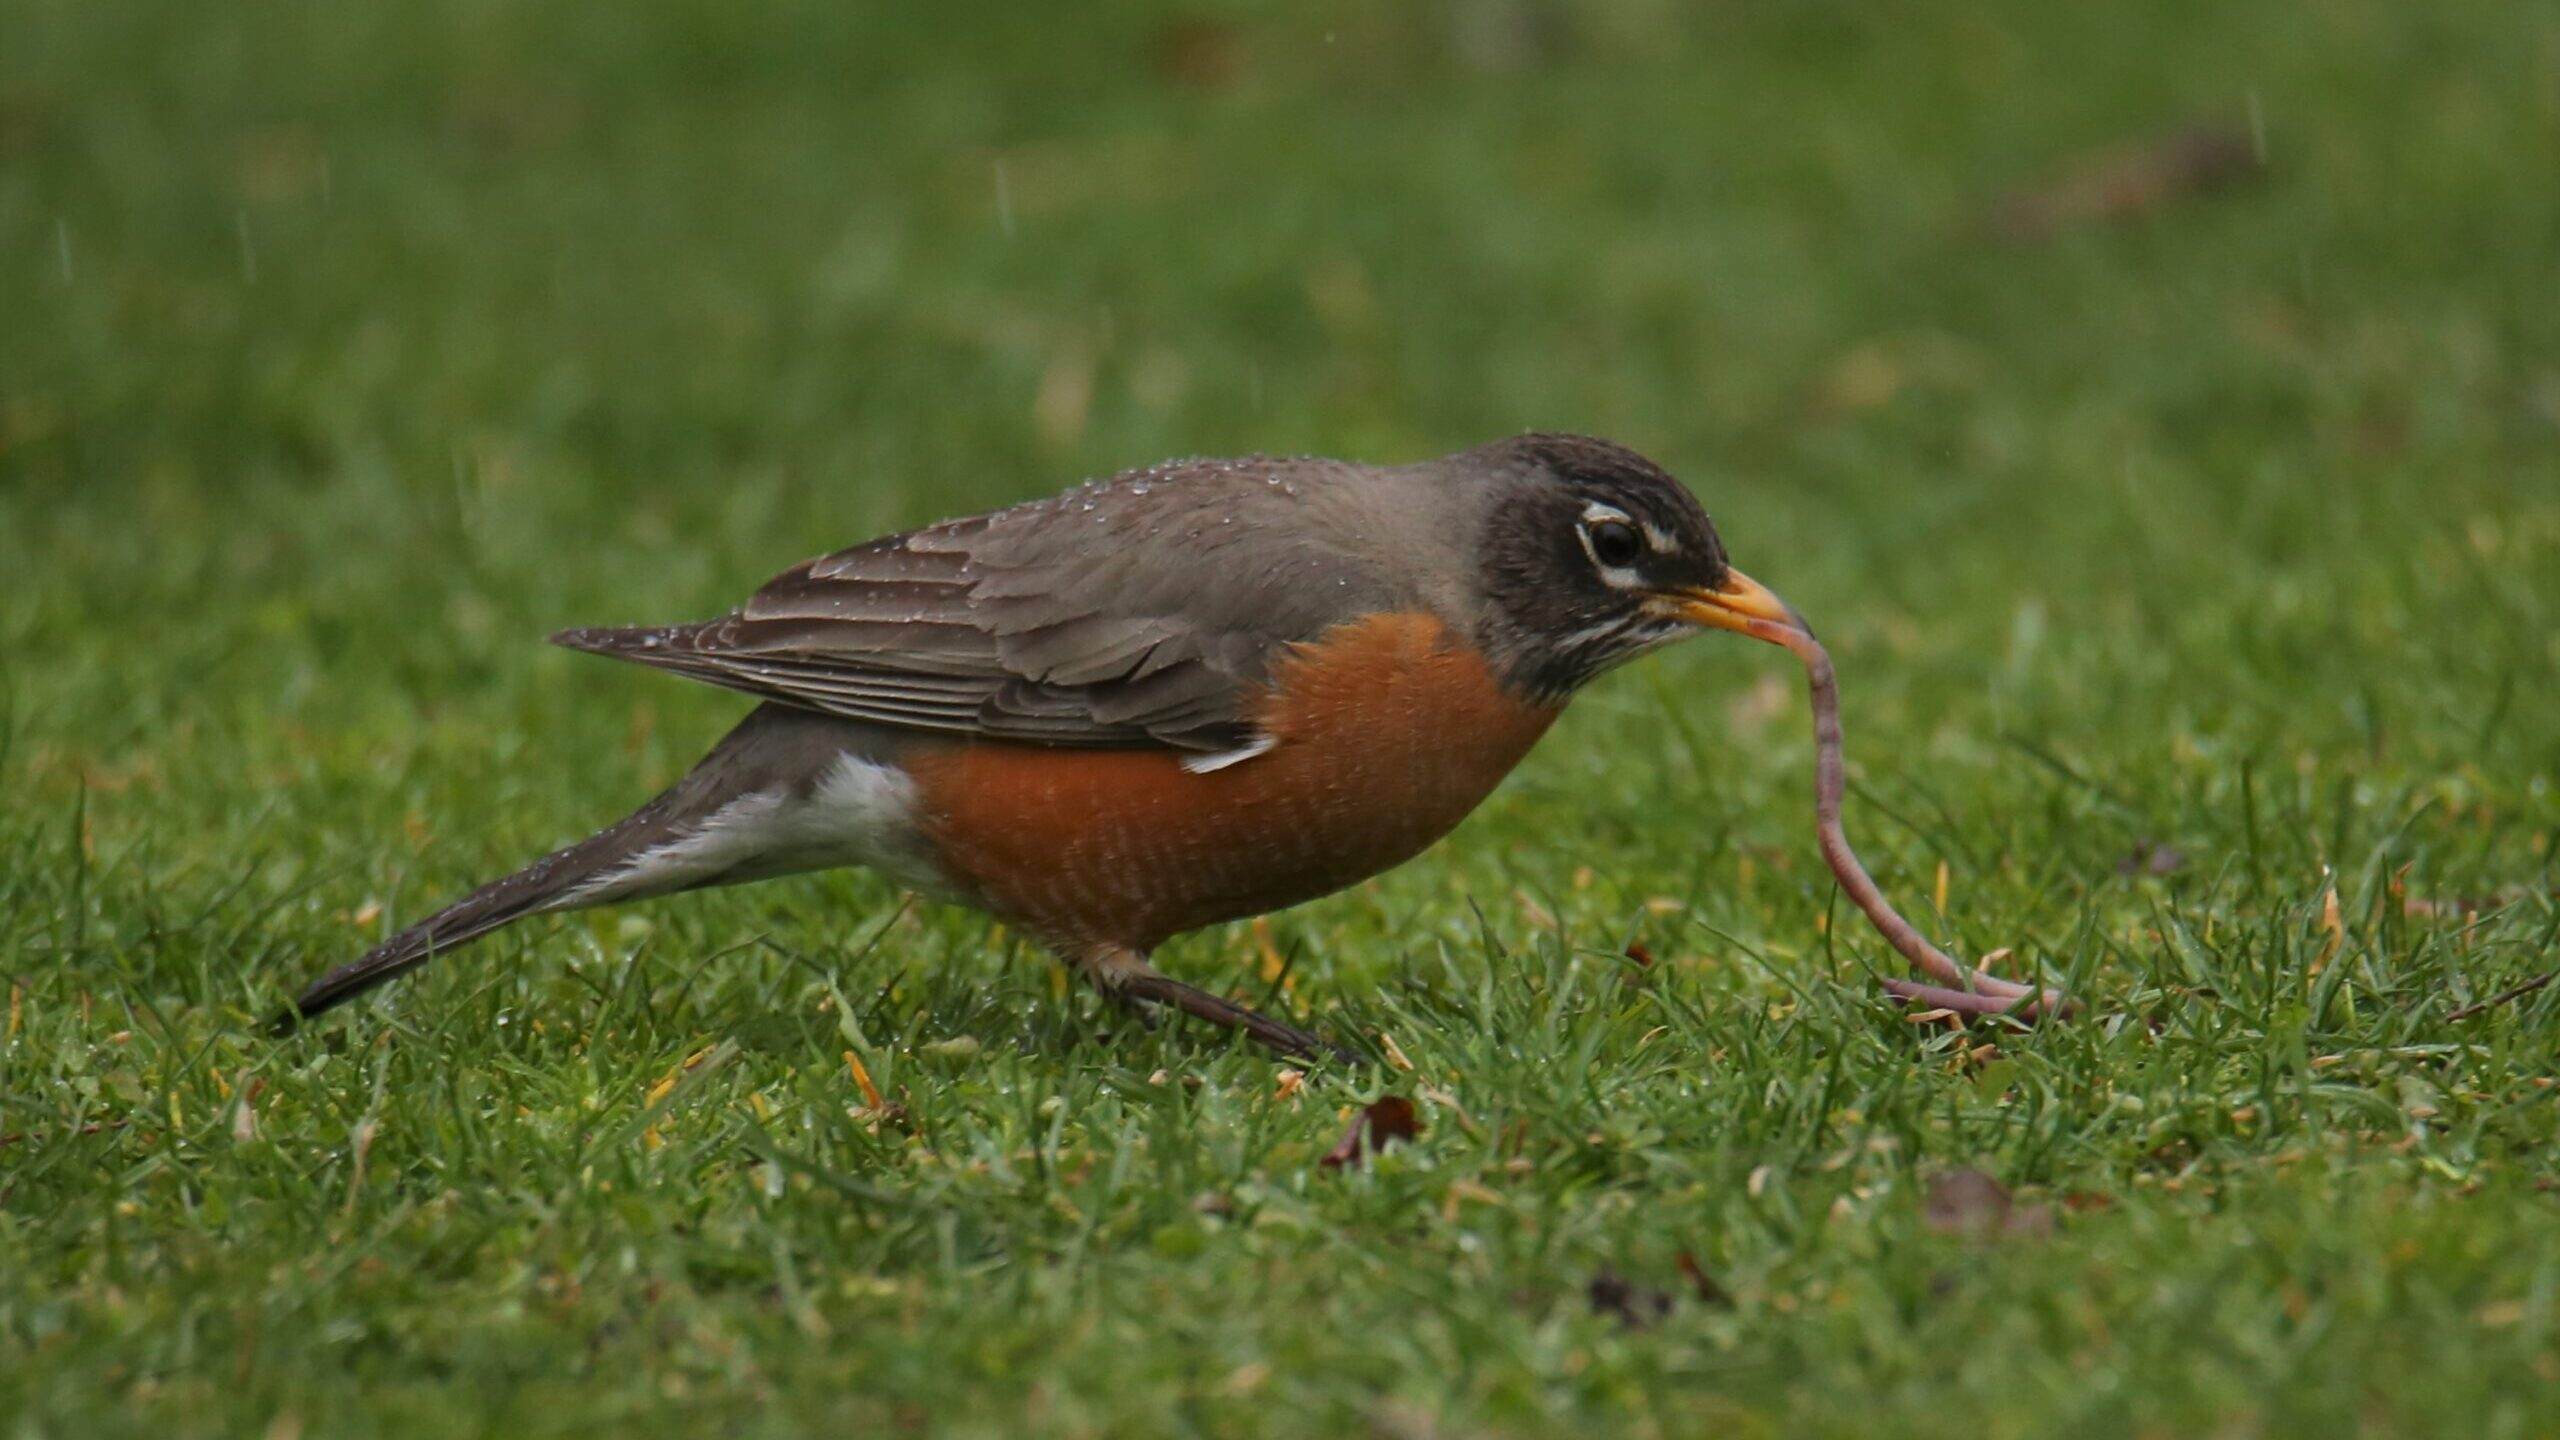 A red breasted robin pulls a worm from the ground